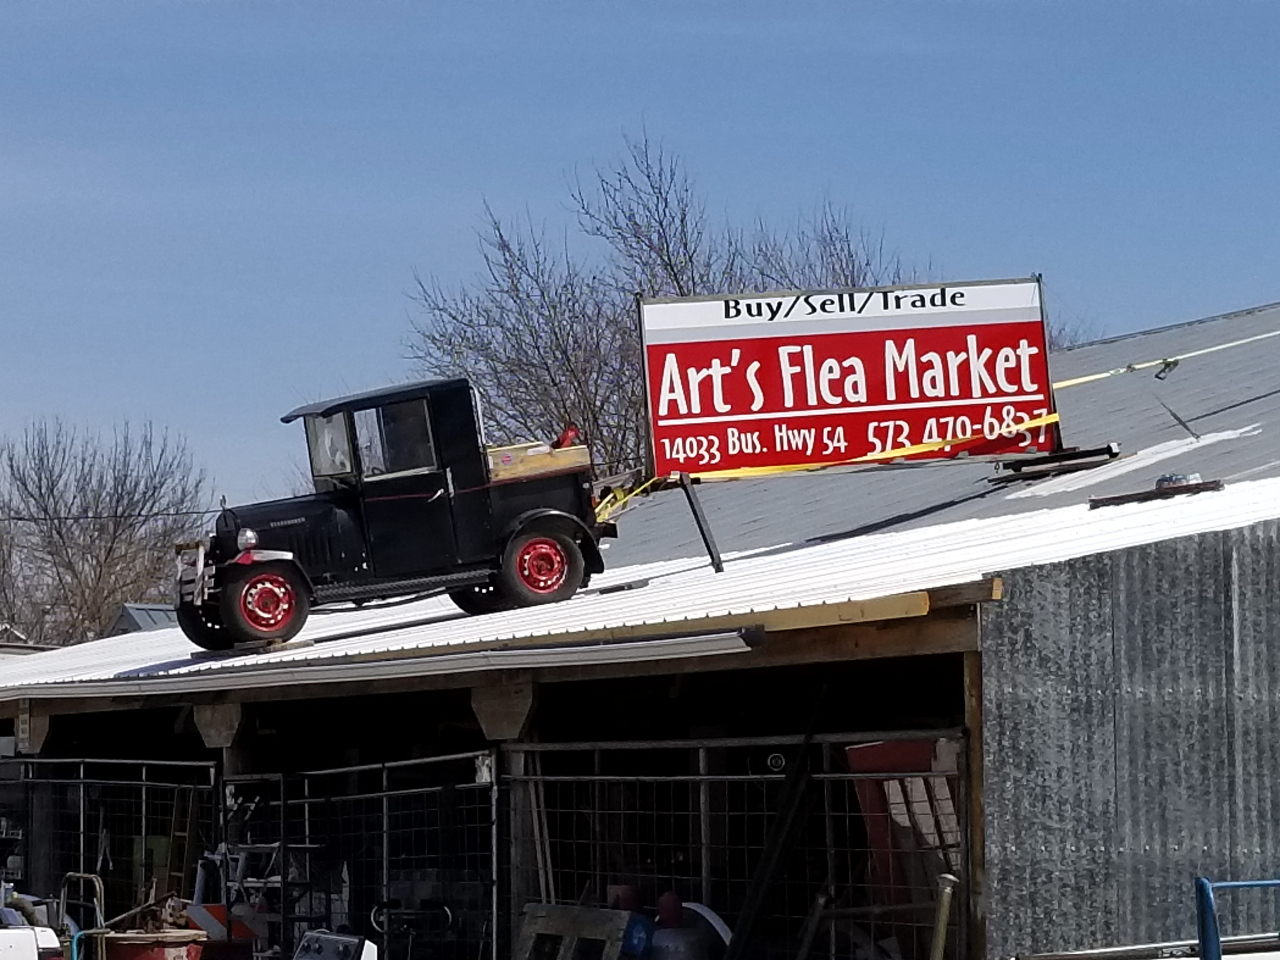 Art's Flea Market